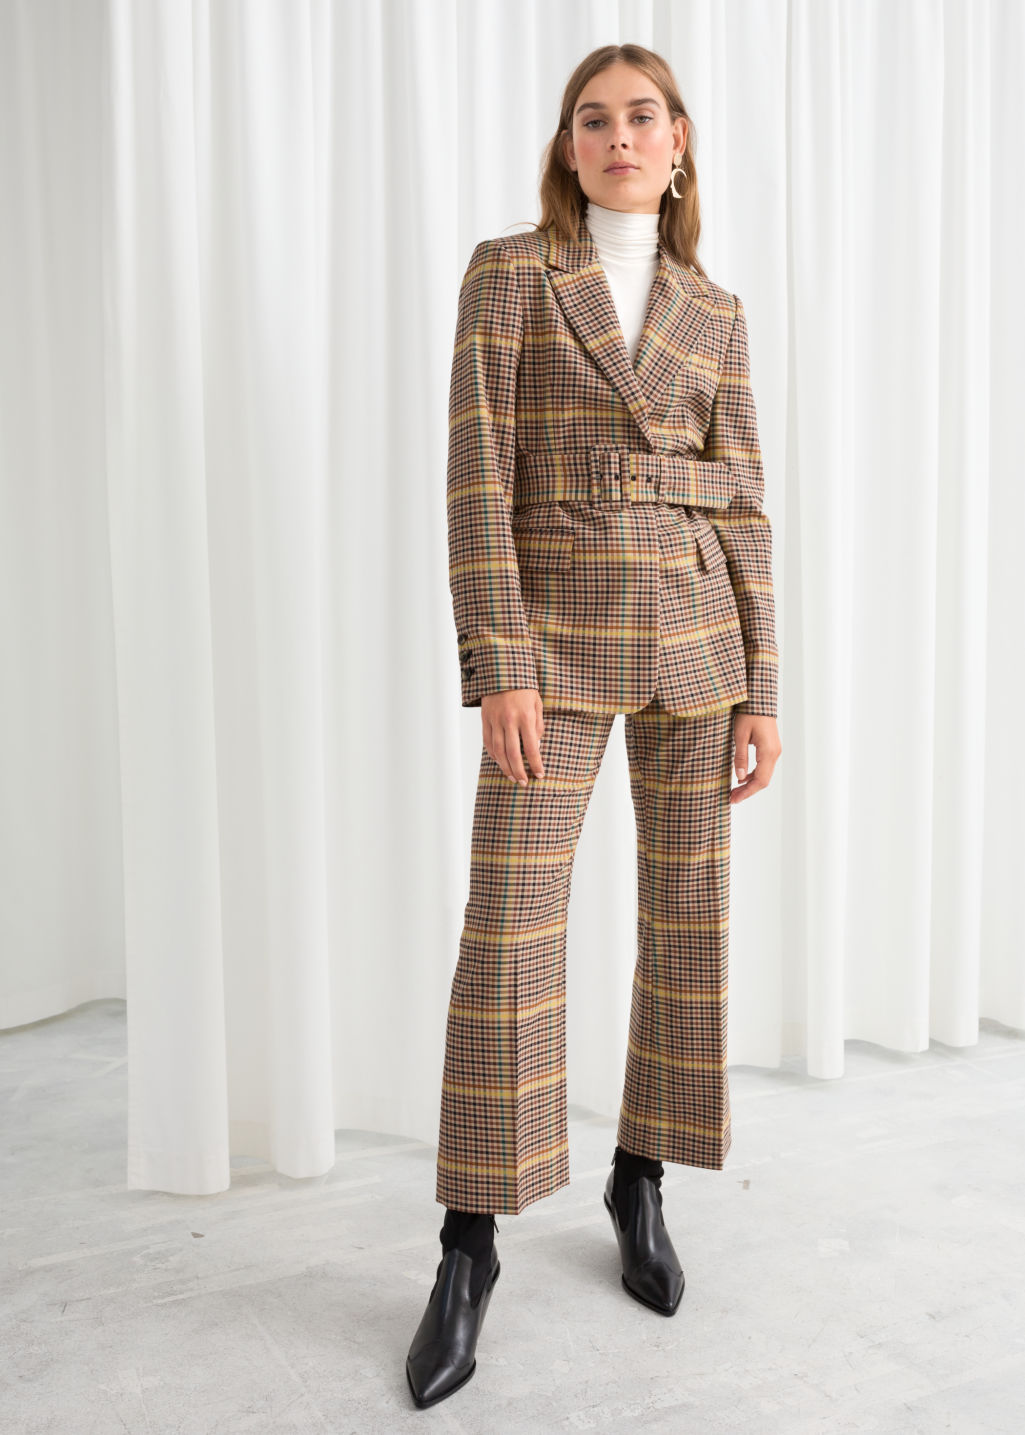 ROSE & IVY Journal The Find | A 70s Inspired Plaid Suit